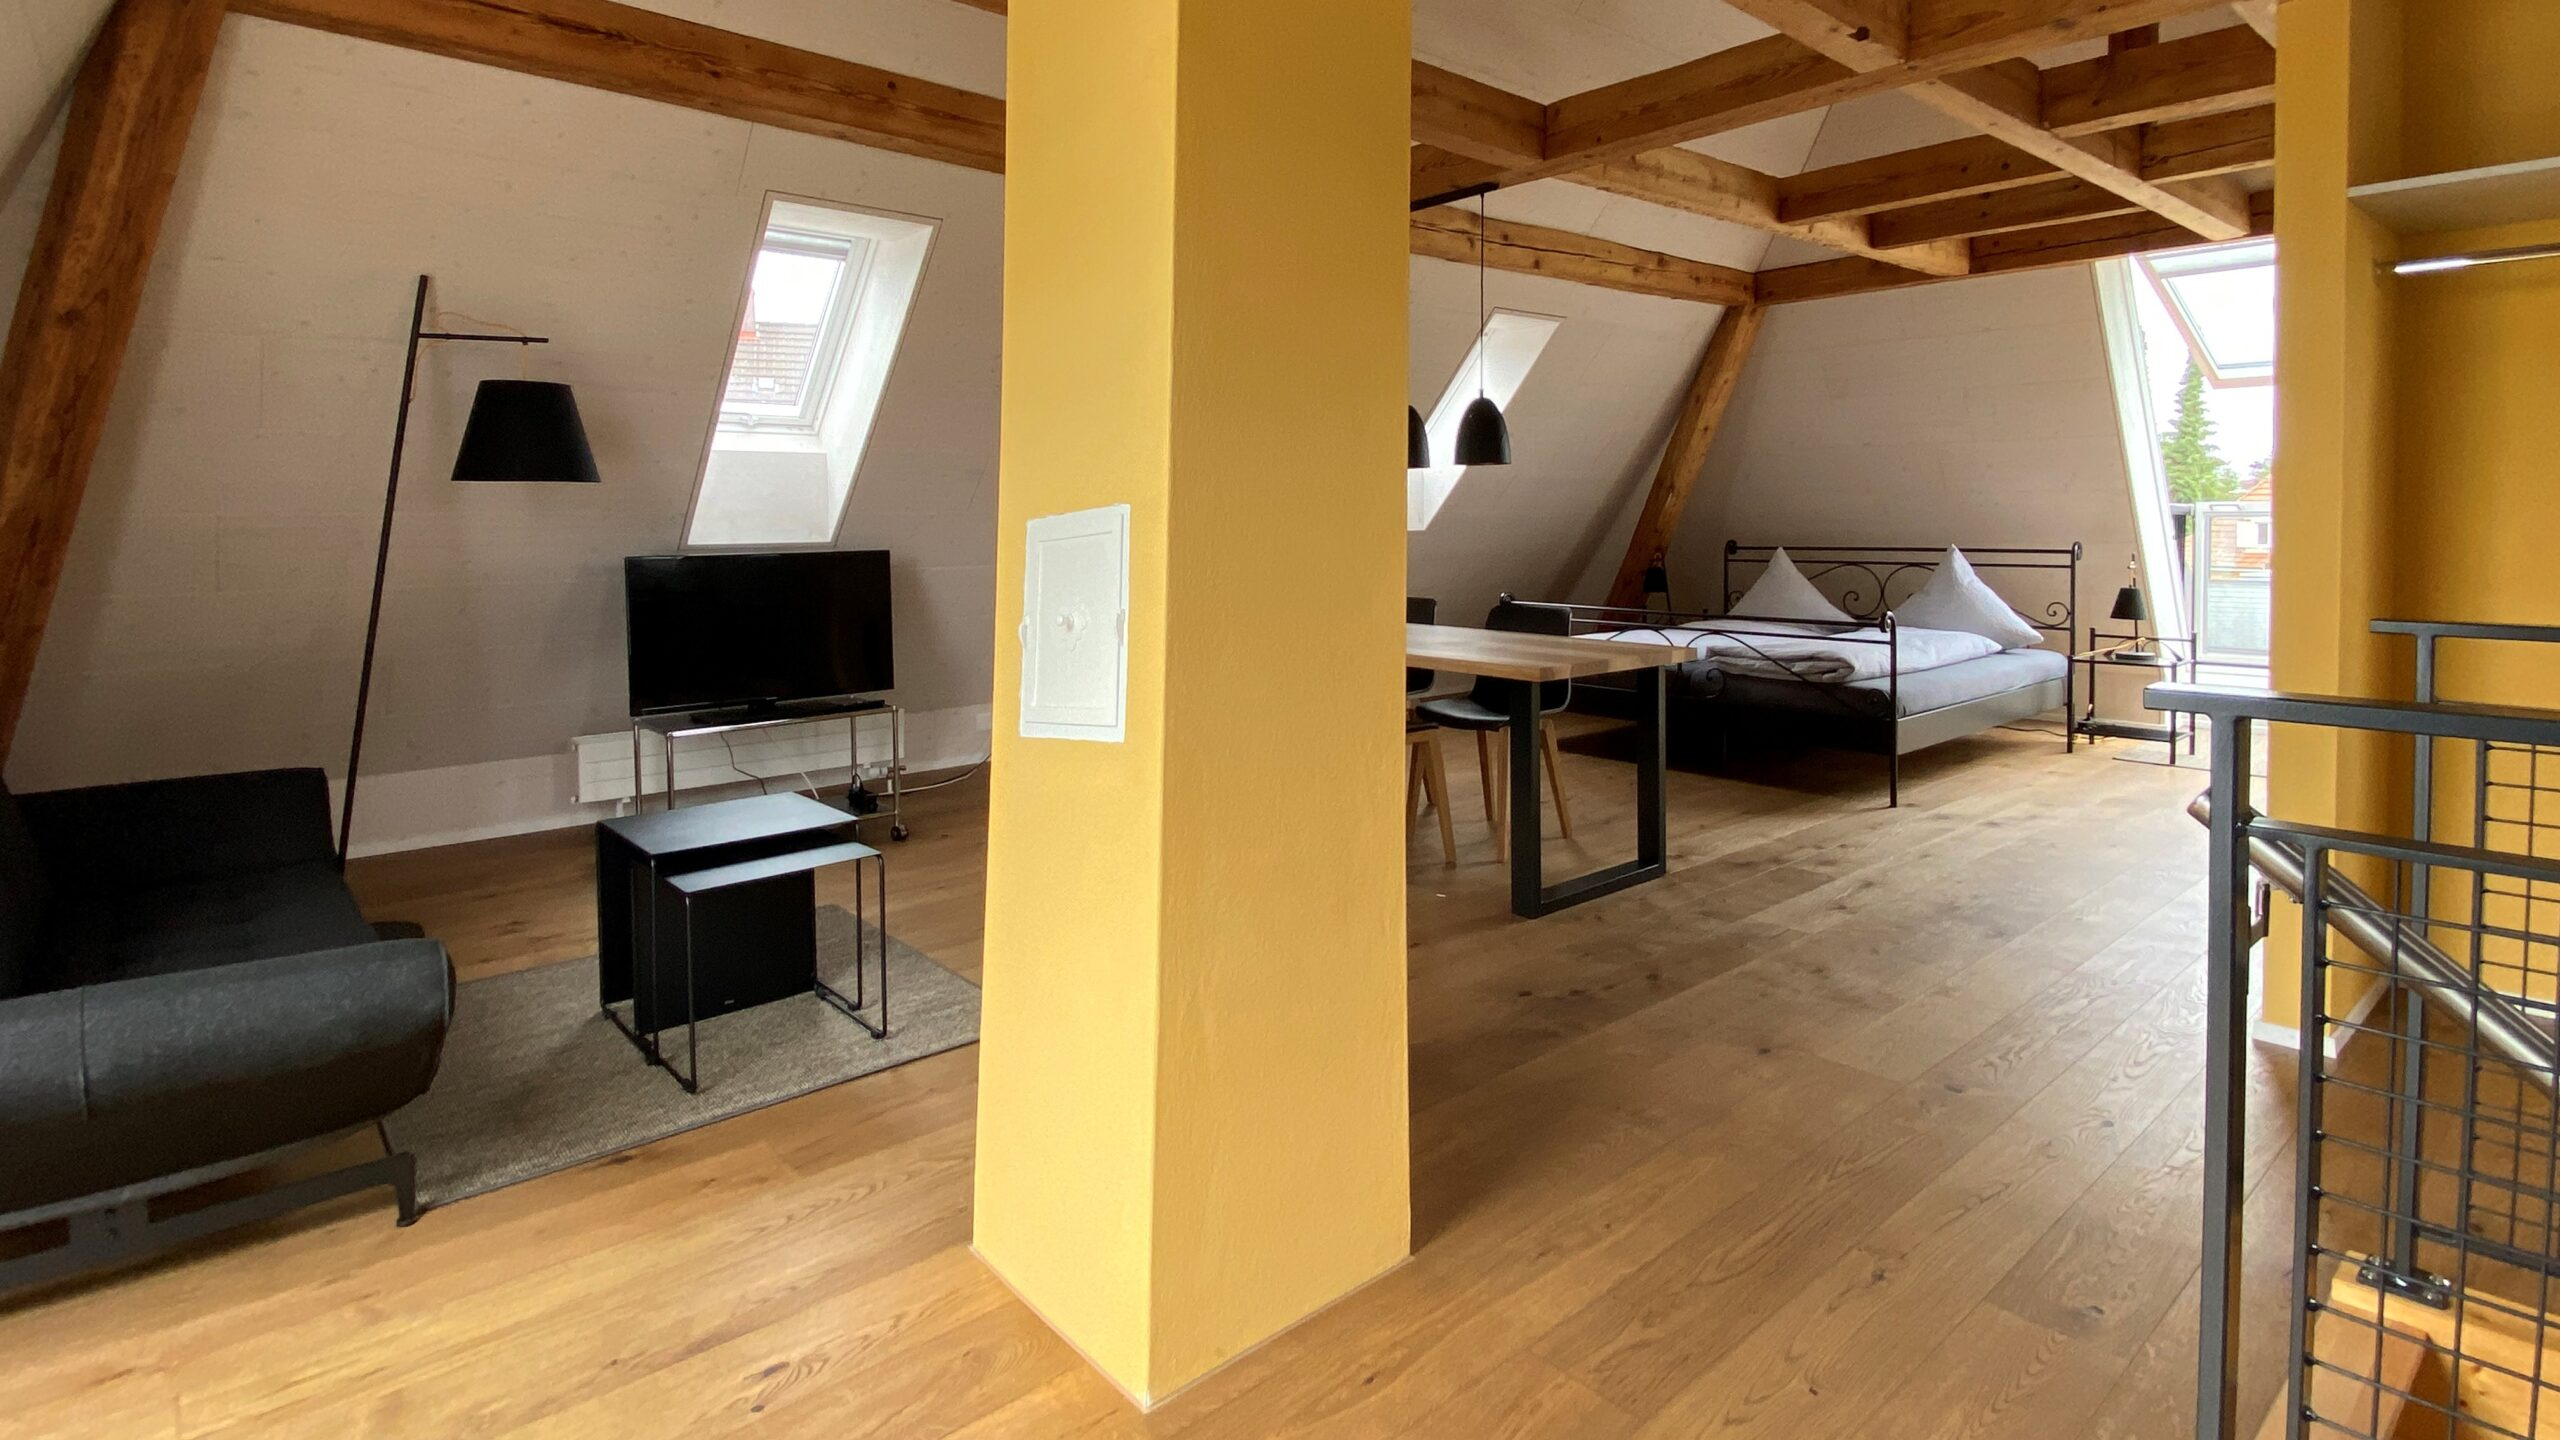 Loft_Kamin_rechts-links